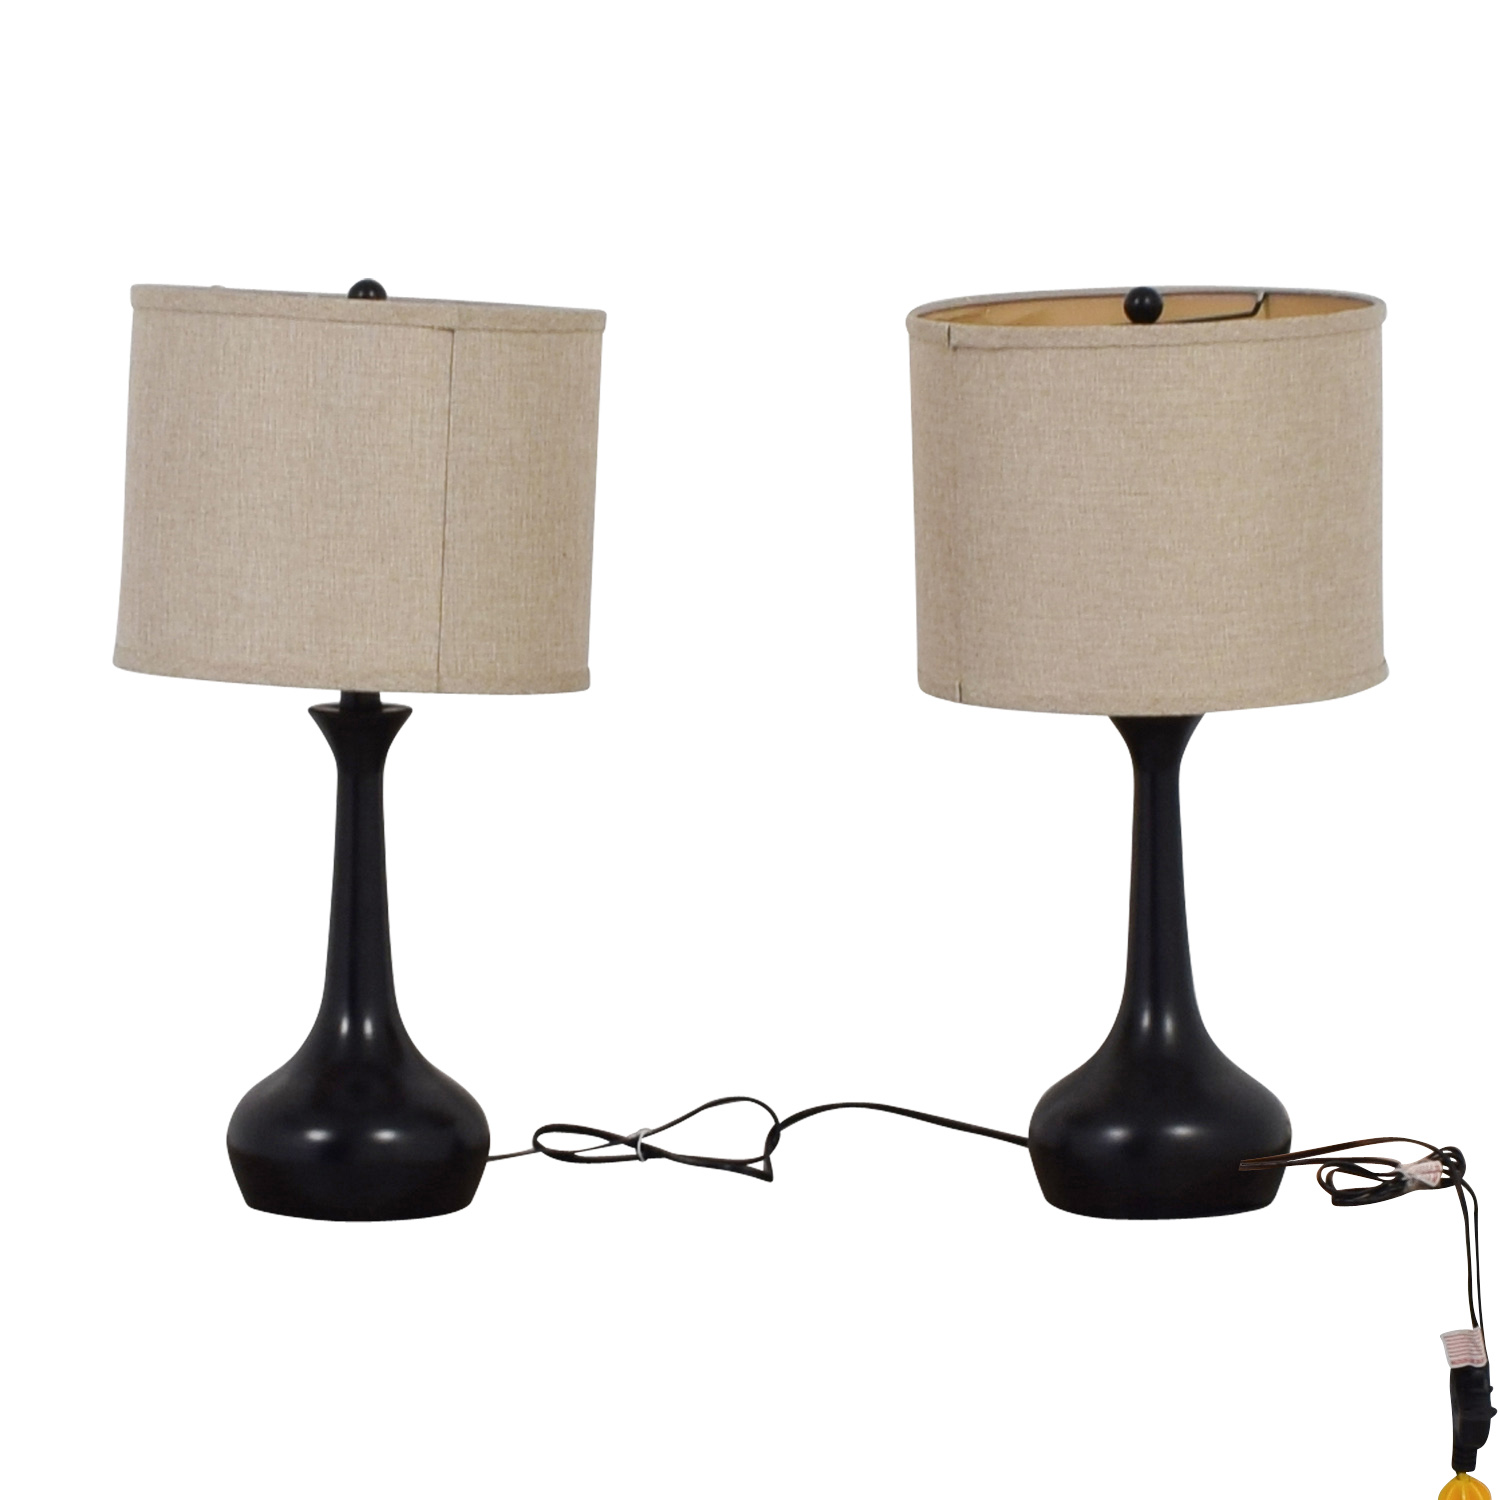 Pier 1 Imports Pier 1 Imports Black Table Lamps price